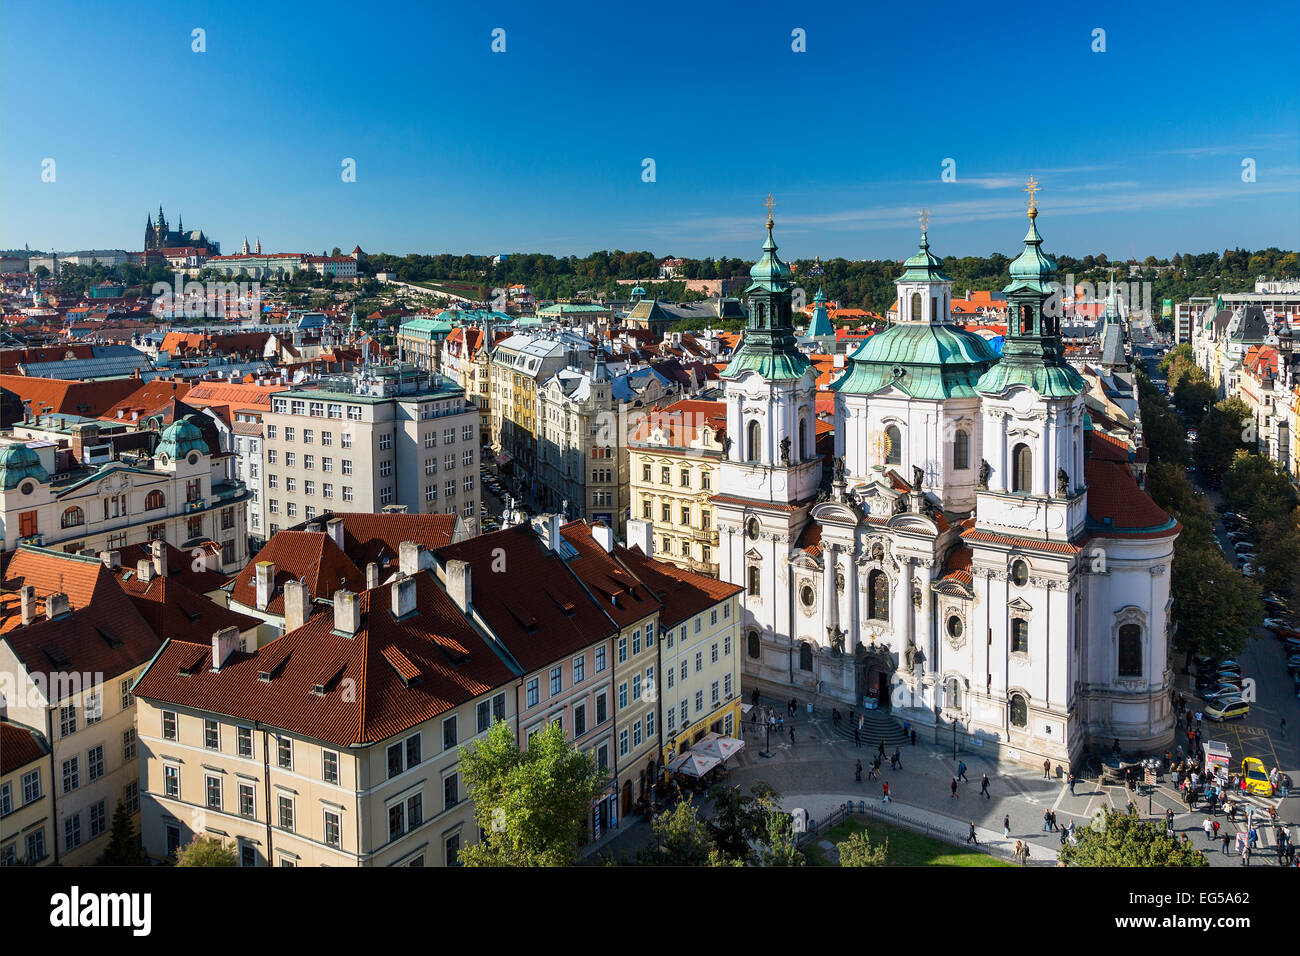 St. Nicholas Church, Old Town, Prague - Stock Image